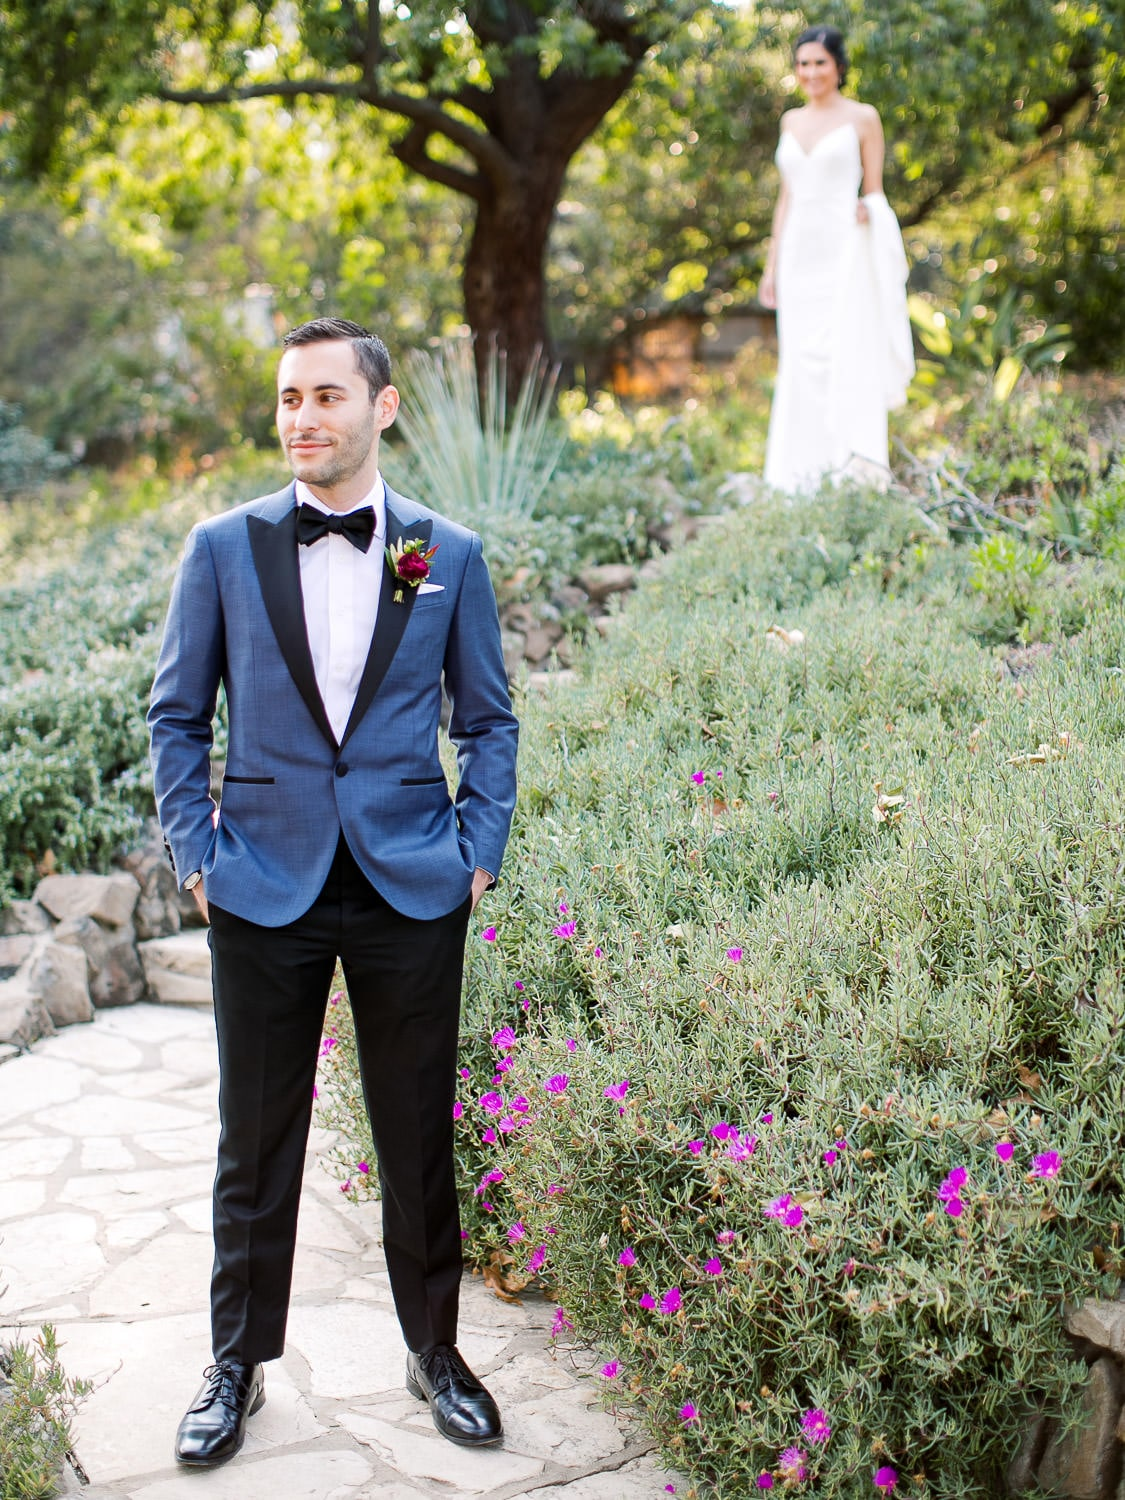 Wedding-First-Look-Inspiration-Greg-Ross